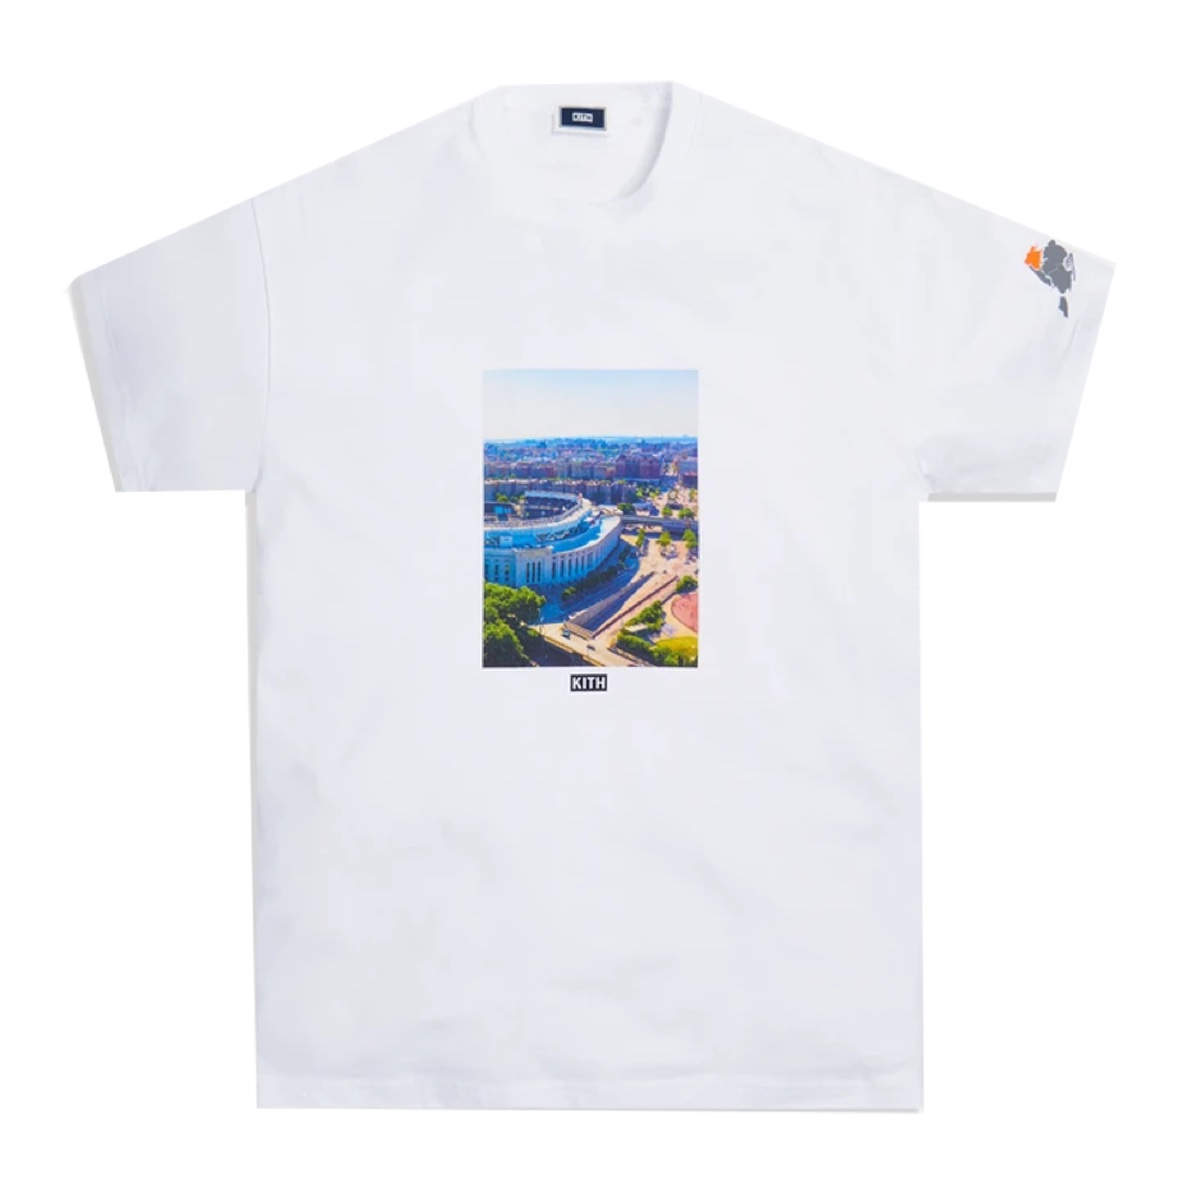 Kith 5 Borough The Bronx Tee